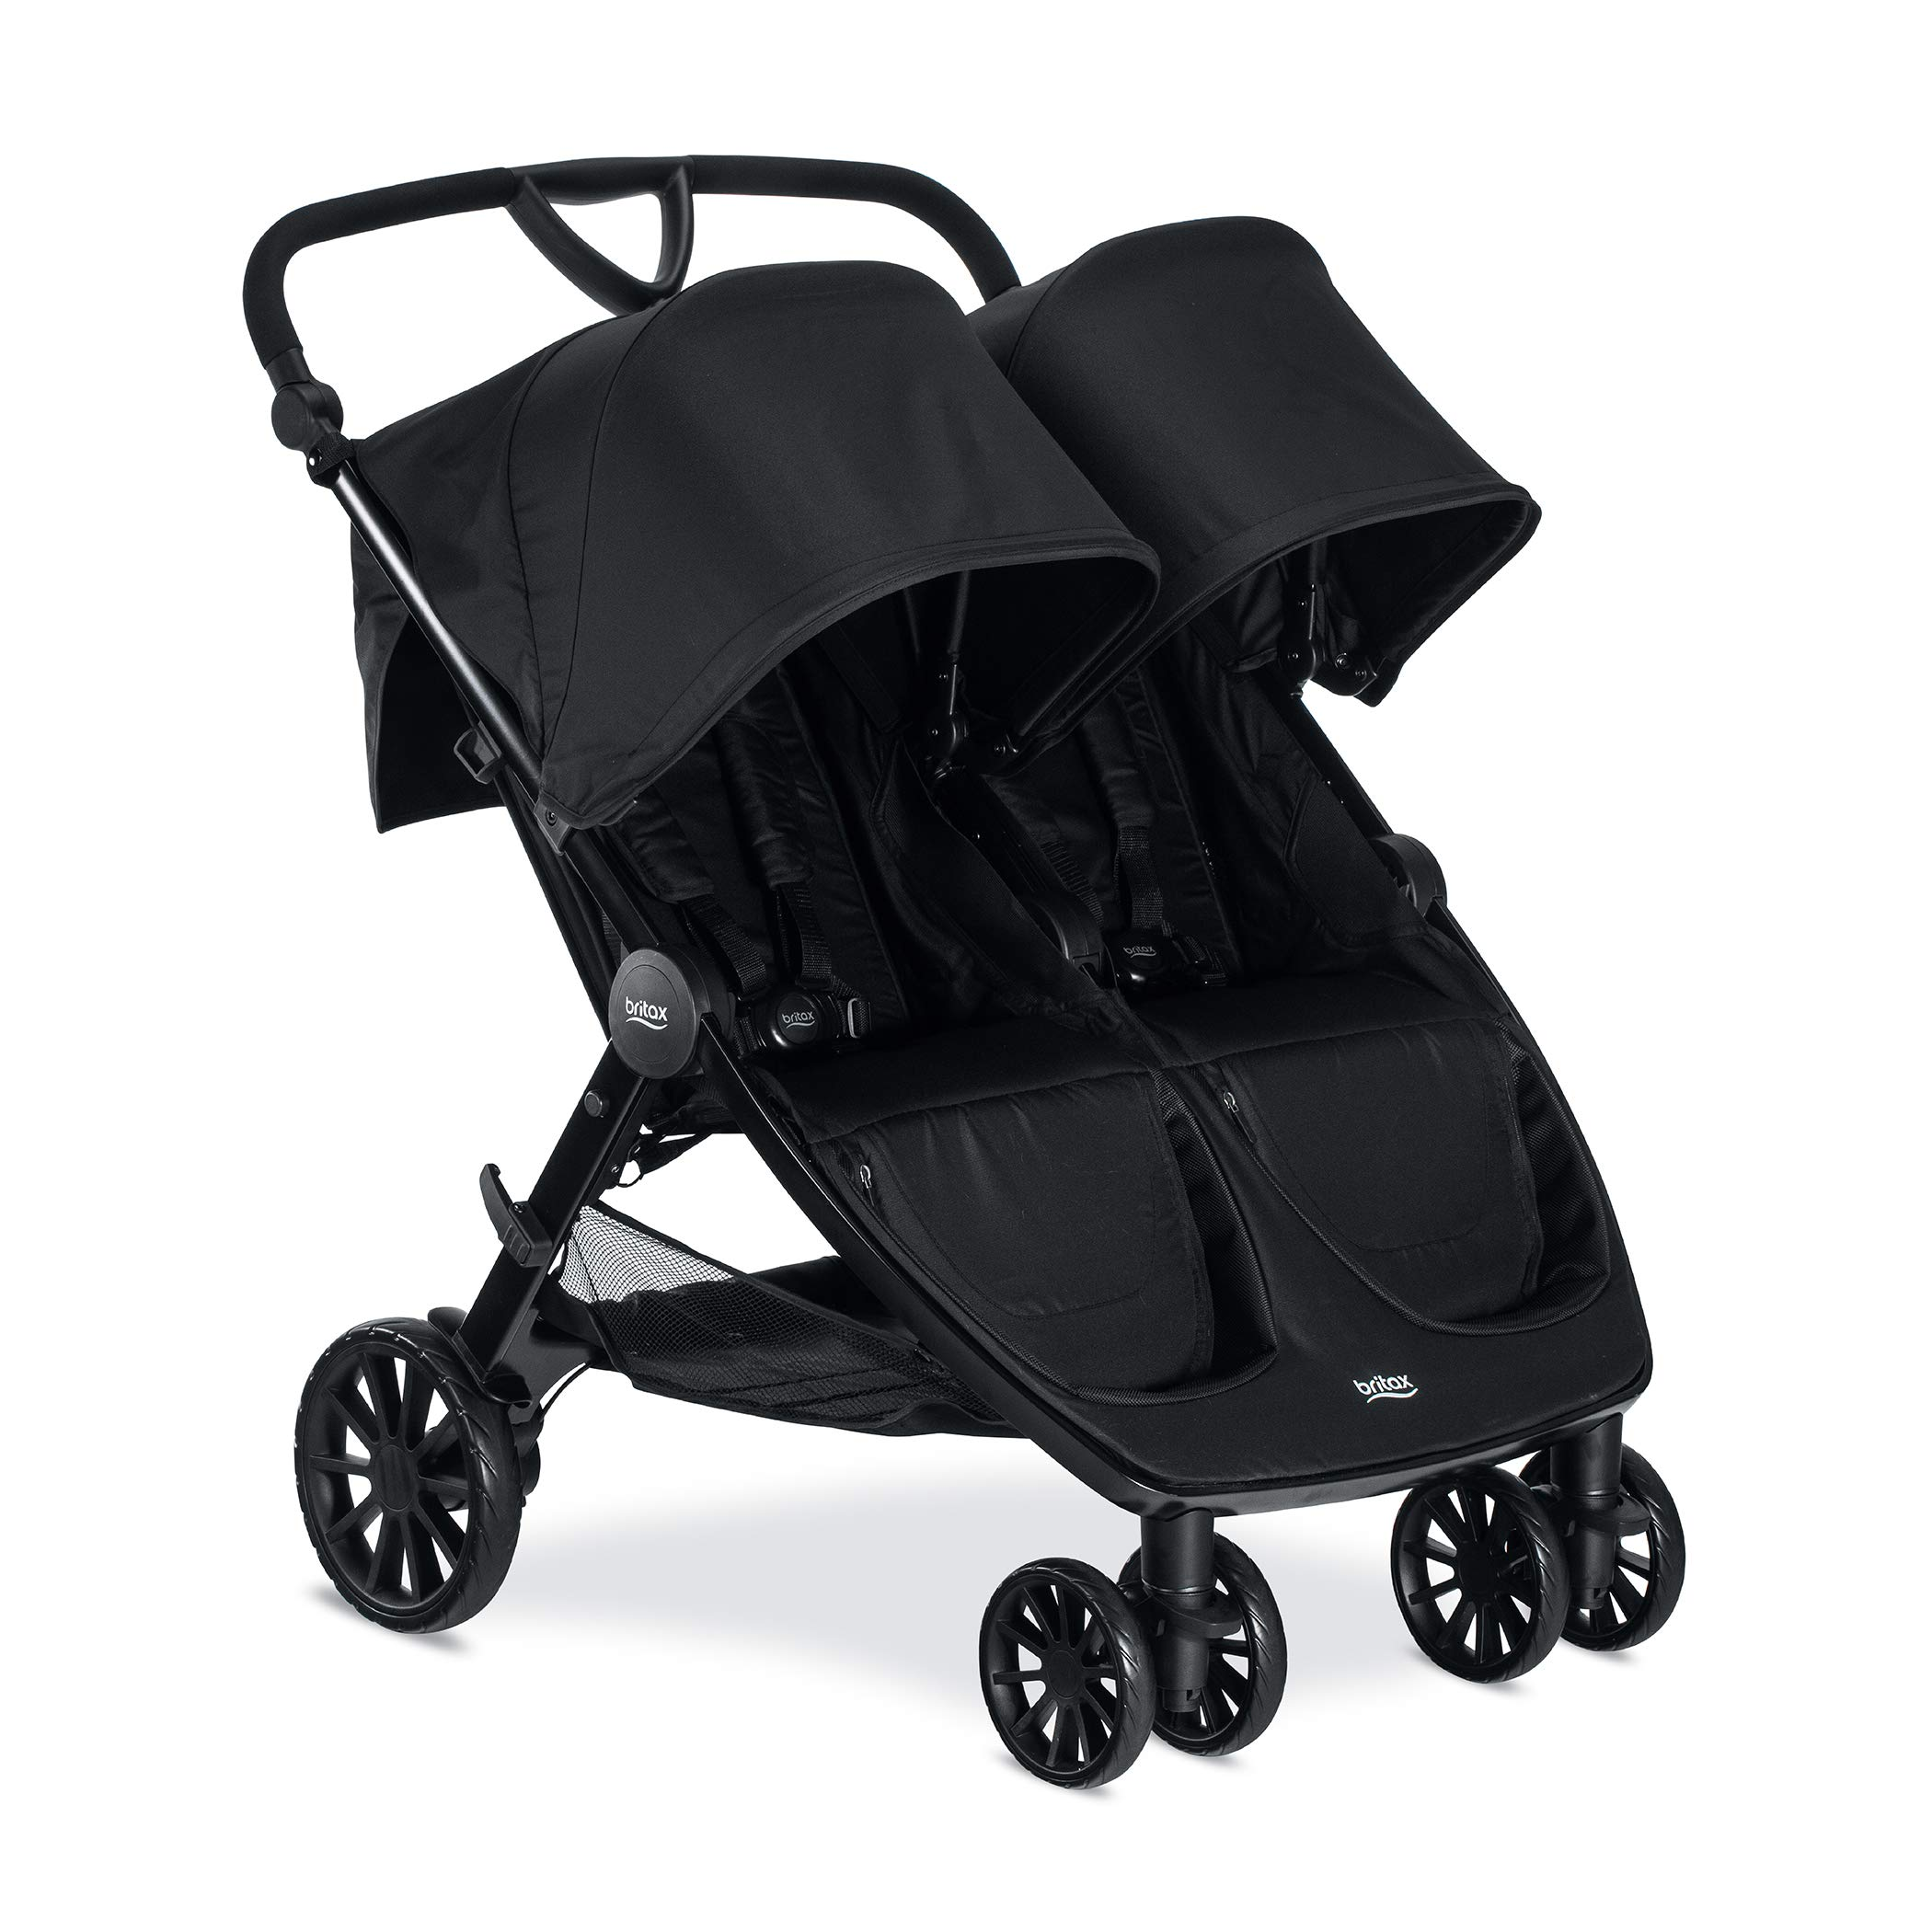 Britax B-Lively Double Stroller - Up to 100 pounds - Car Seat Compatible - UV 50+ Canopy - Adjustable Handlebar - Easy Fold, Raven by BRITAX